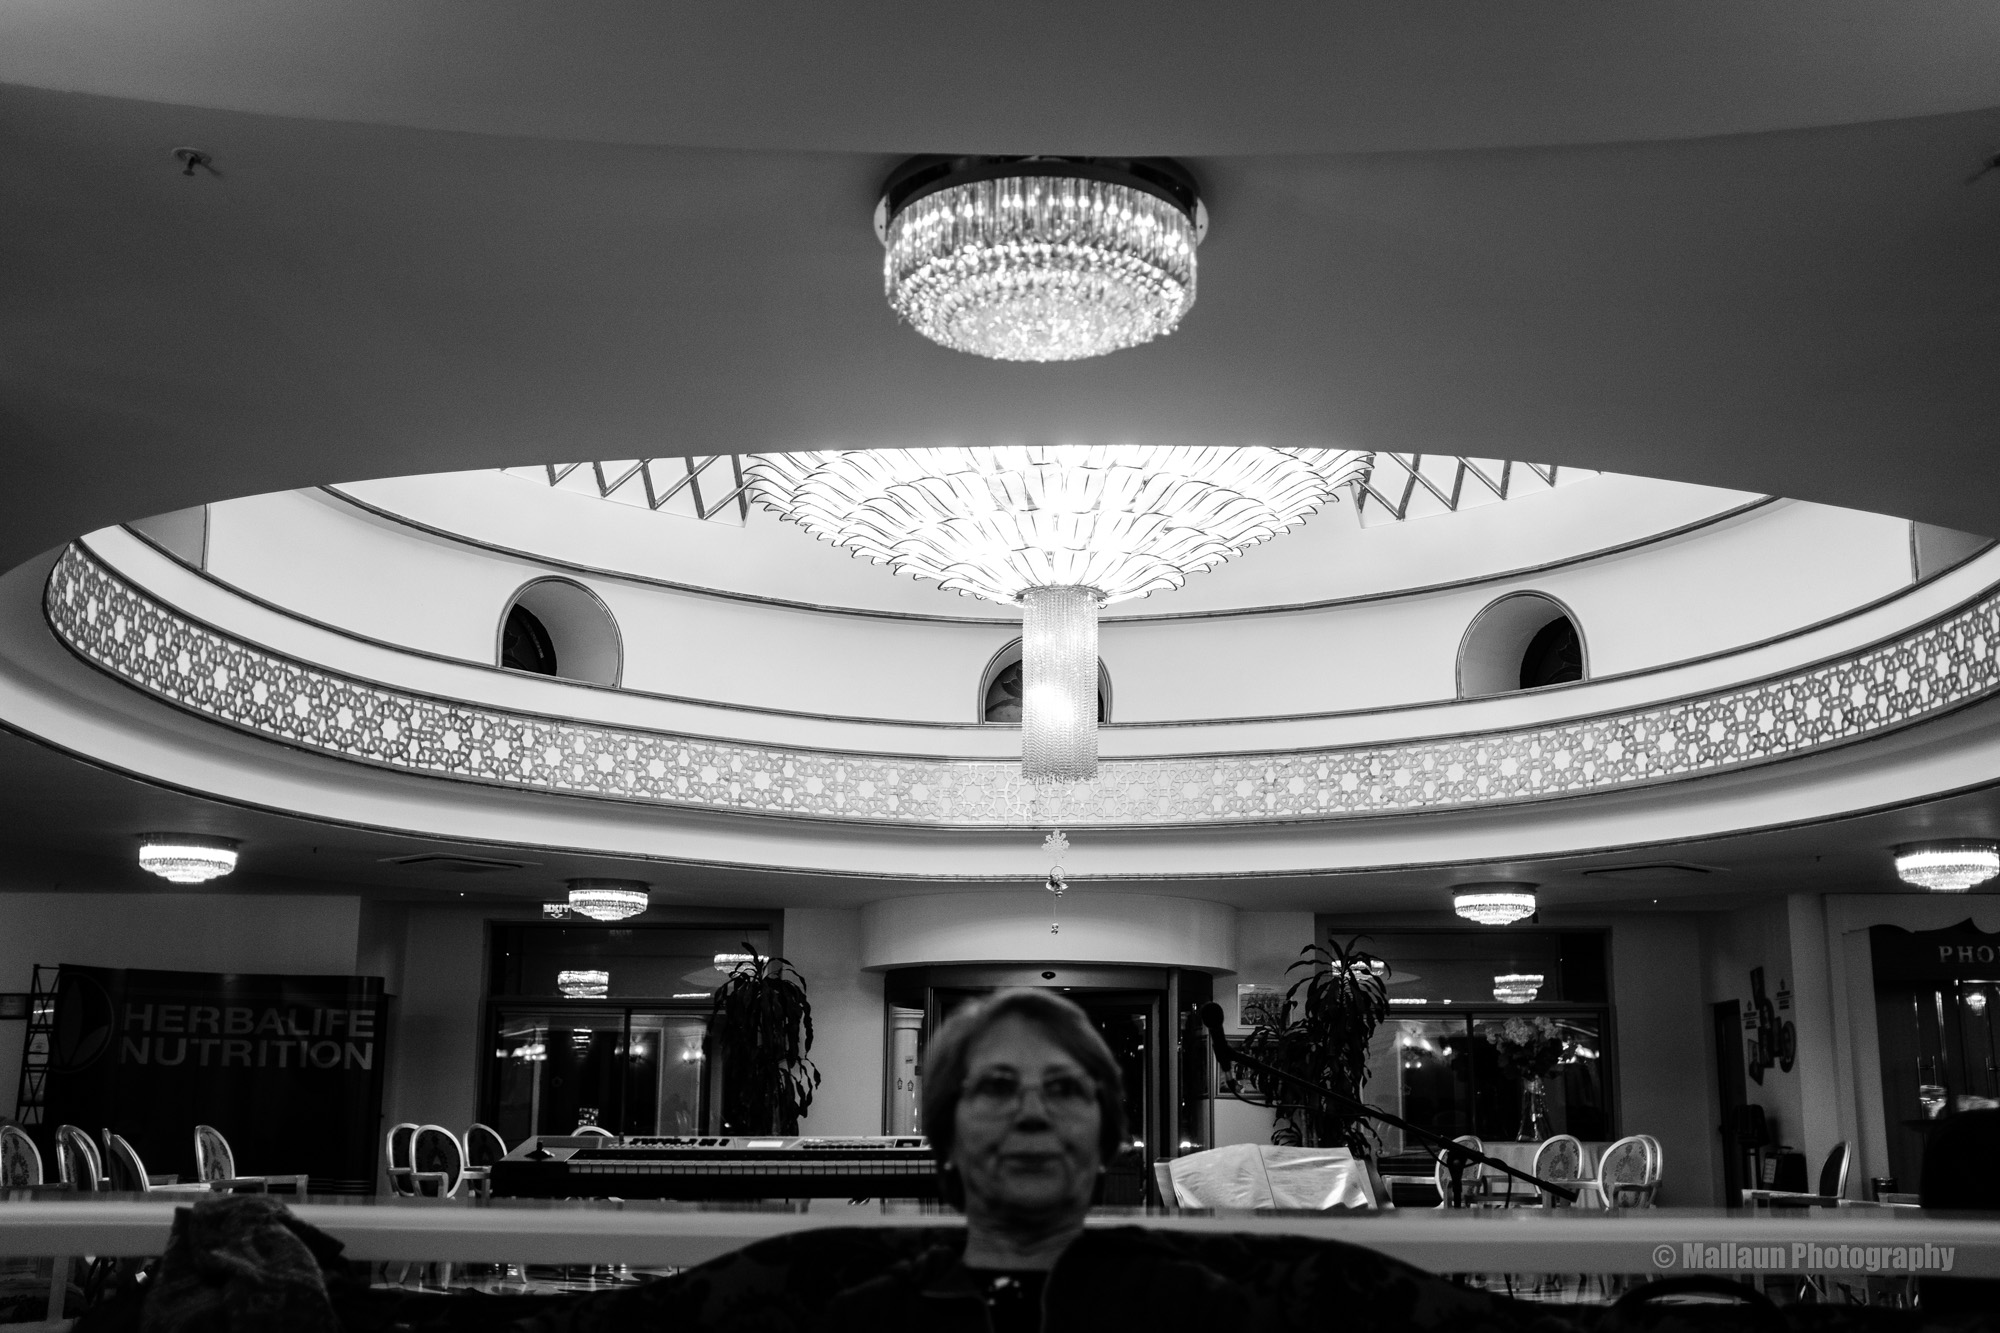 Hotel-Lobby in Side © Mallaun Photography